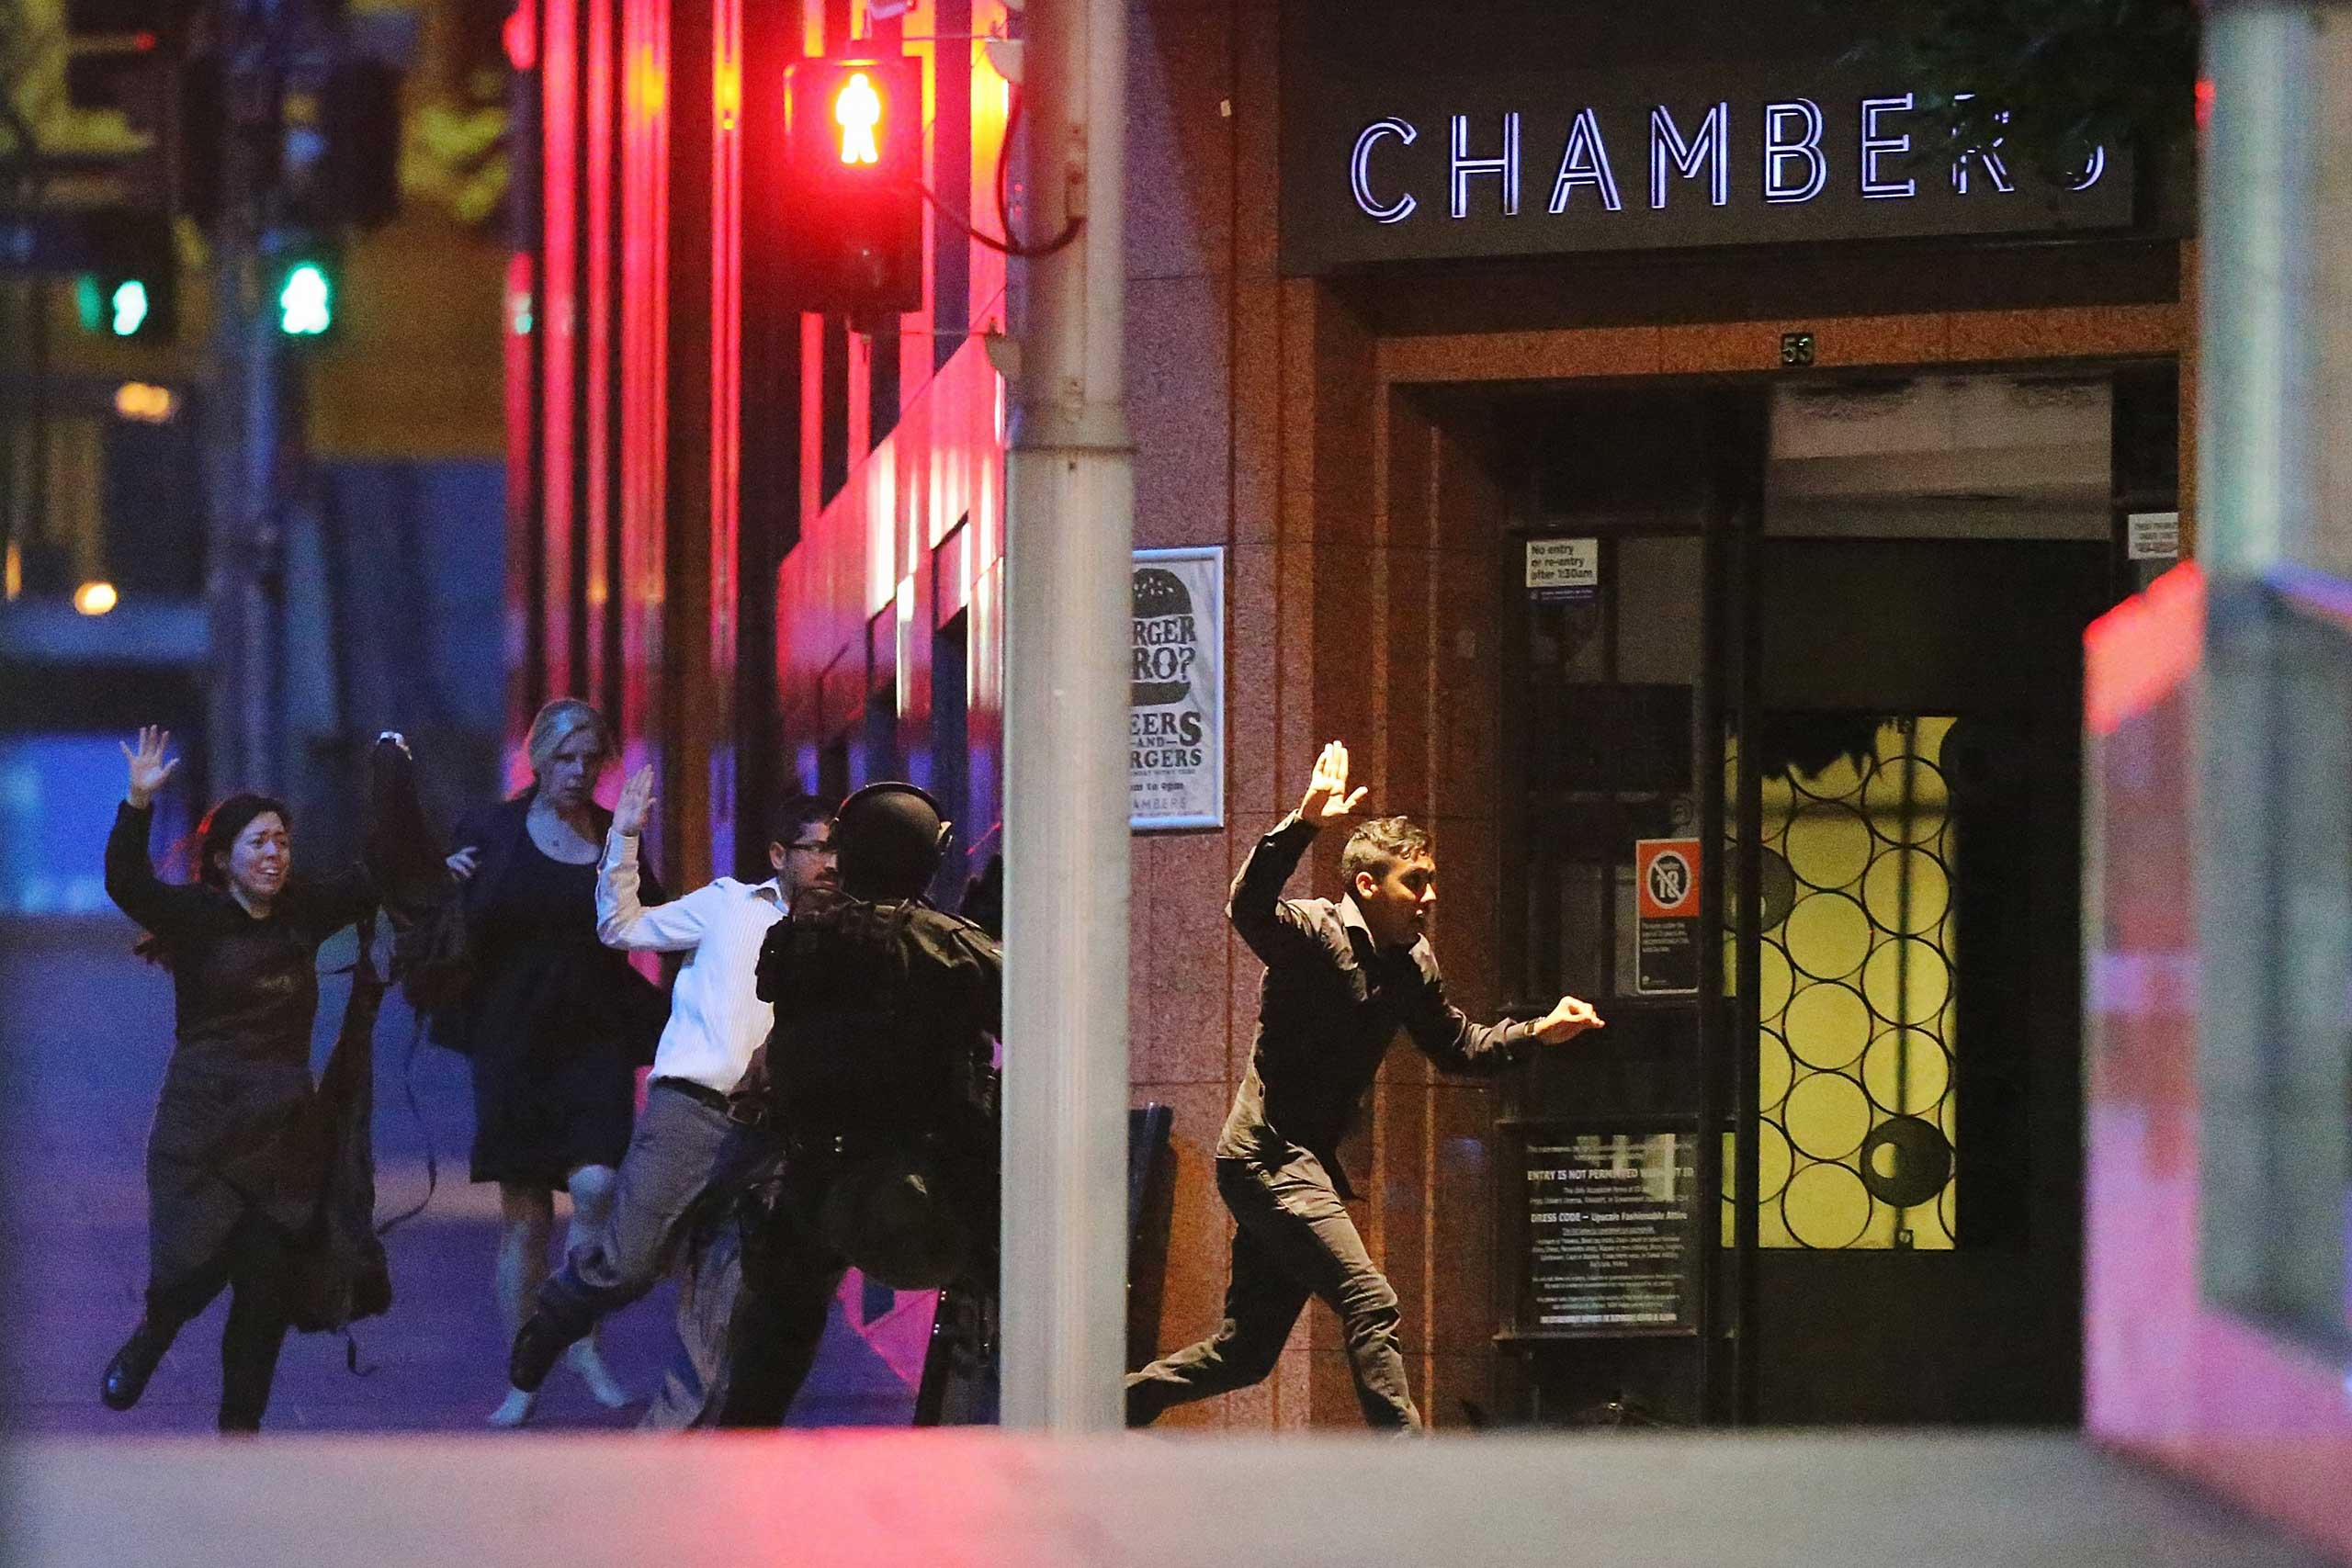 People run with their hands up from the Lindt Cafe, Martin Place during a hostage standoff on Dec. 15, 2014 in Sydney.